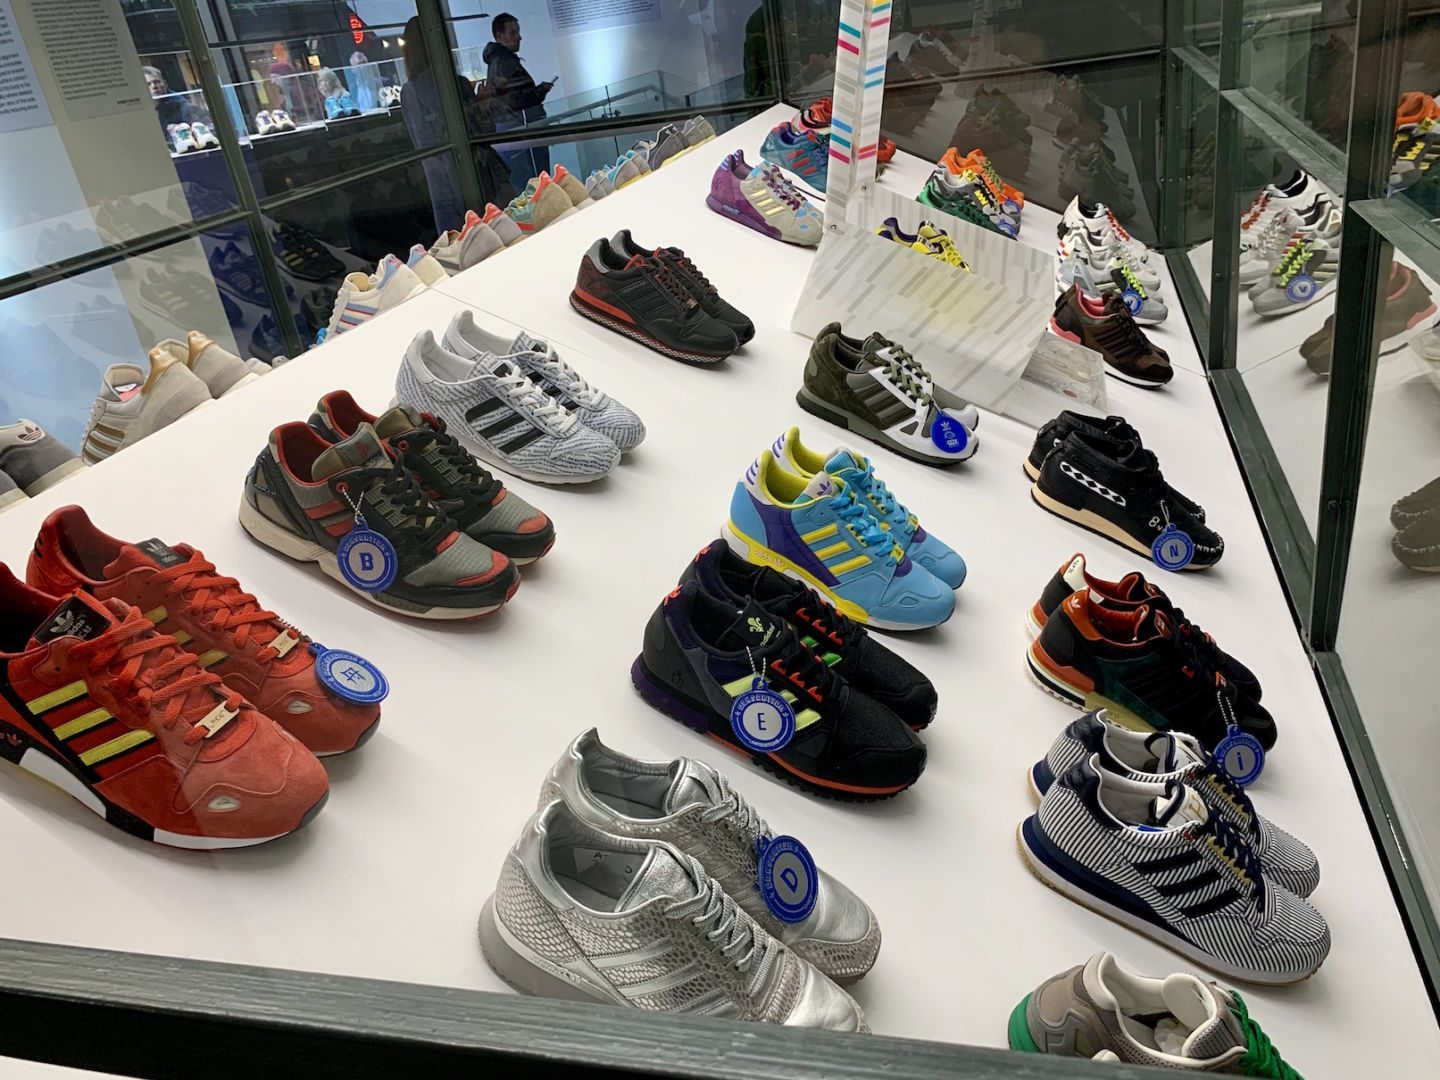 London was calling all ZX Lovers – The Roots of Running